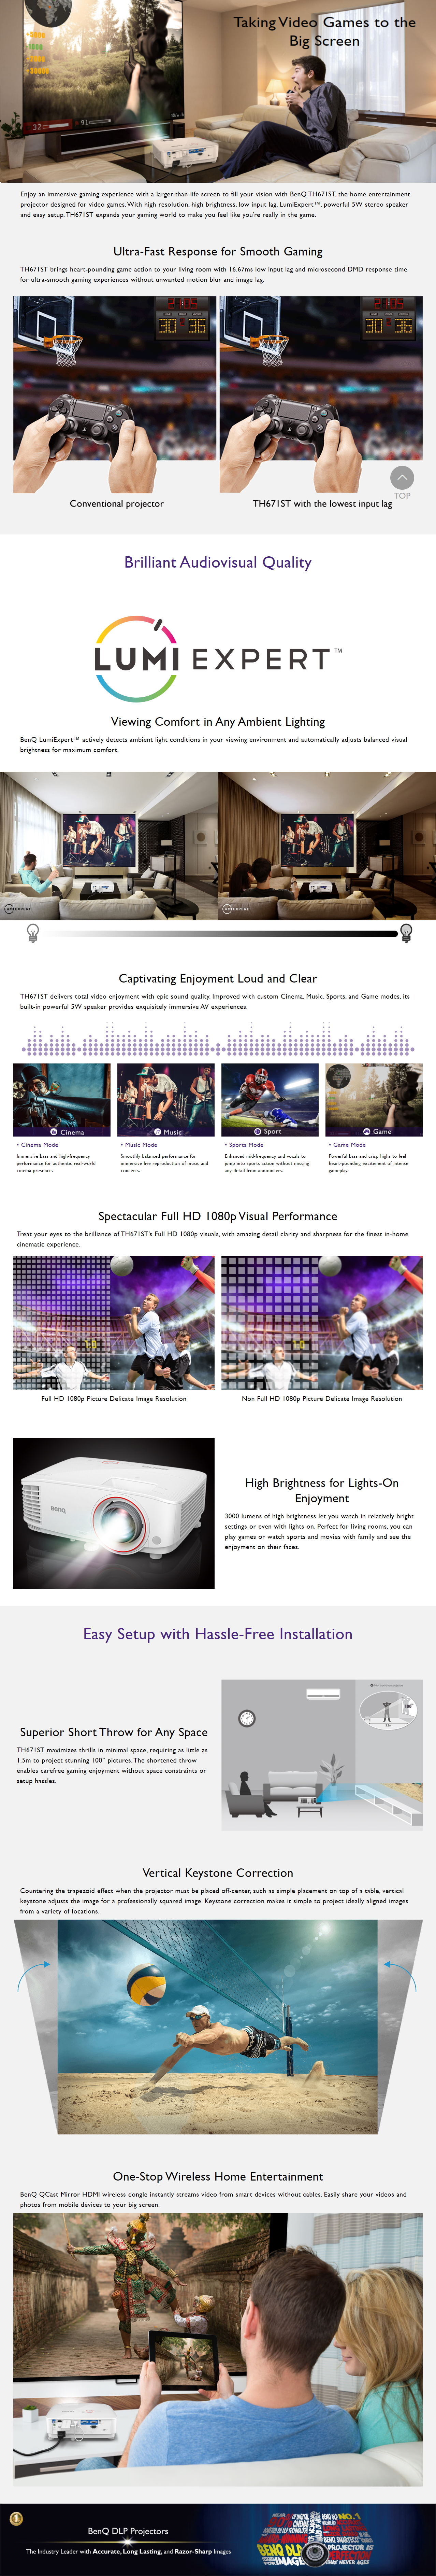 A large marketing image providing additional information about the product BenQ TH671ST 3000LM Full HD Short Throw Projector - Additional alt info not provided